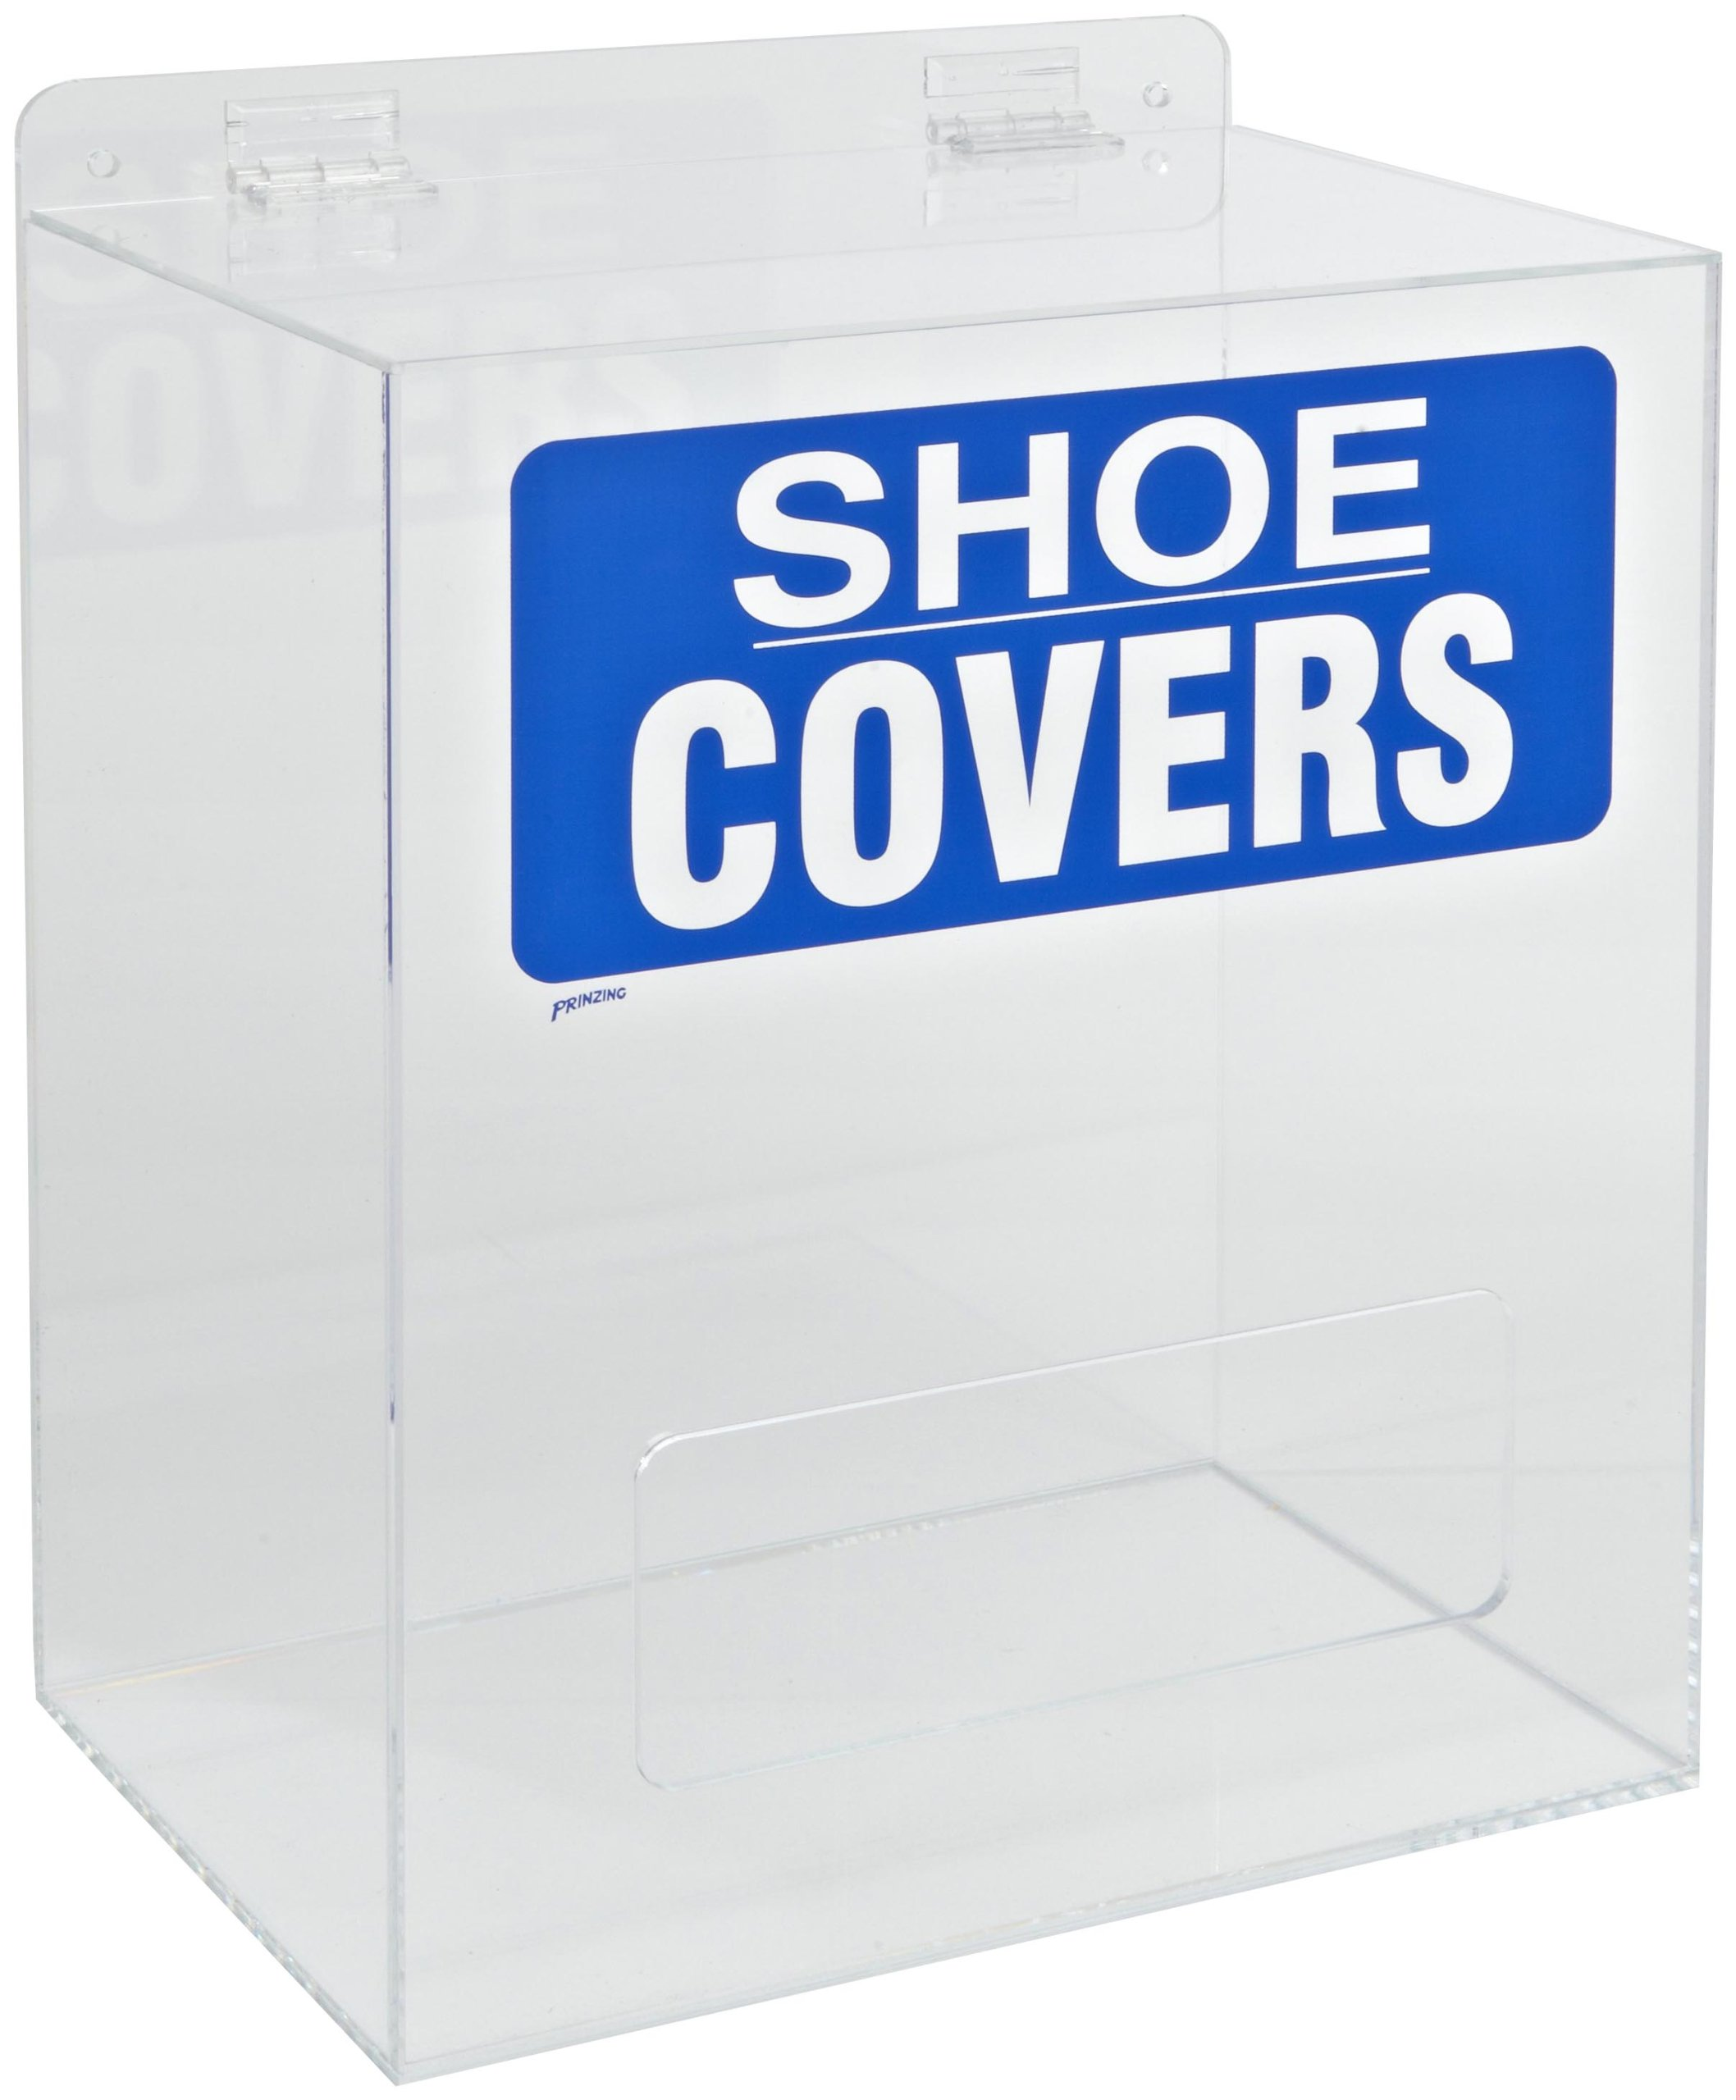 Brady PD322E Plastic Acrylic Shoe Cover Dispenser, Blue on Clear, 12'' W, 8'' D, 14'' H by Brady (Image #1)